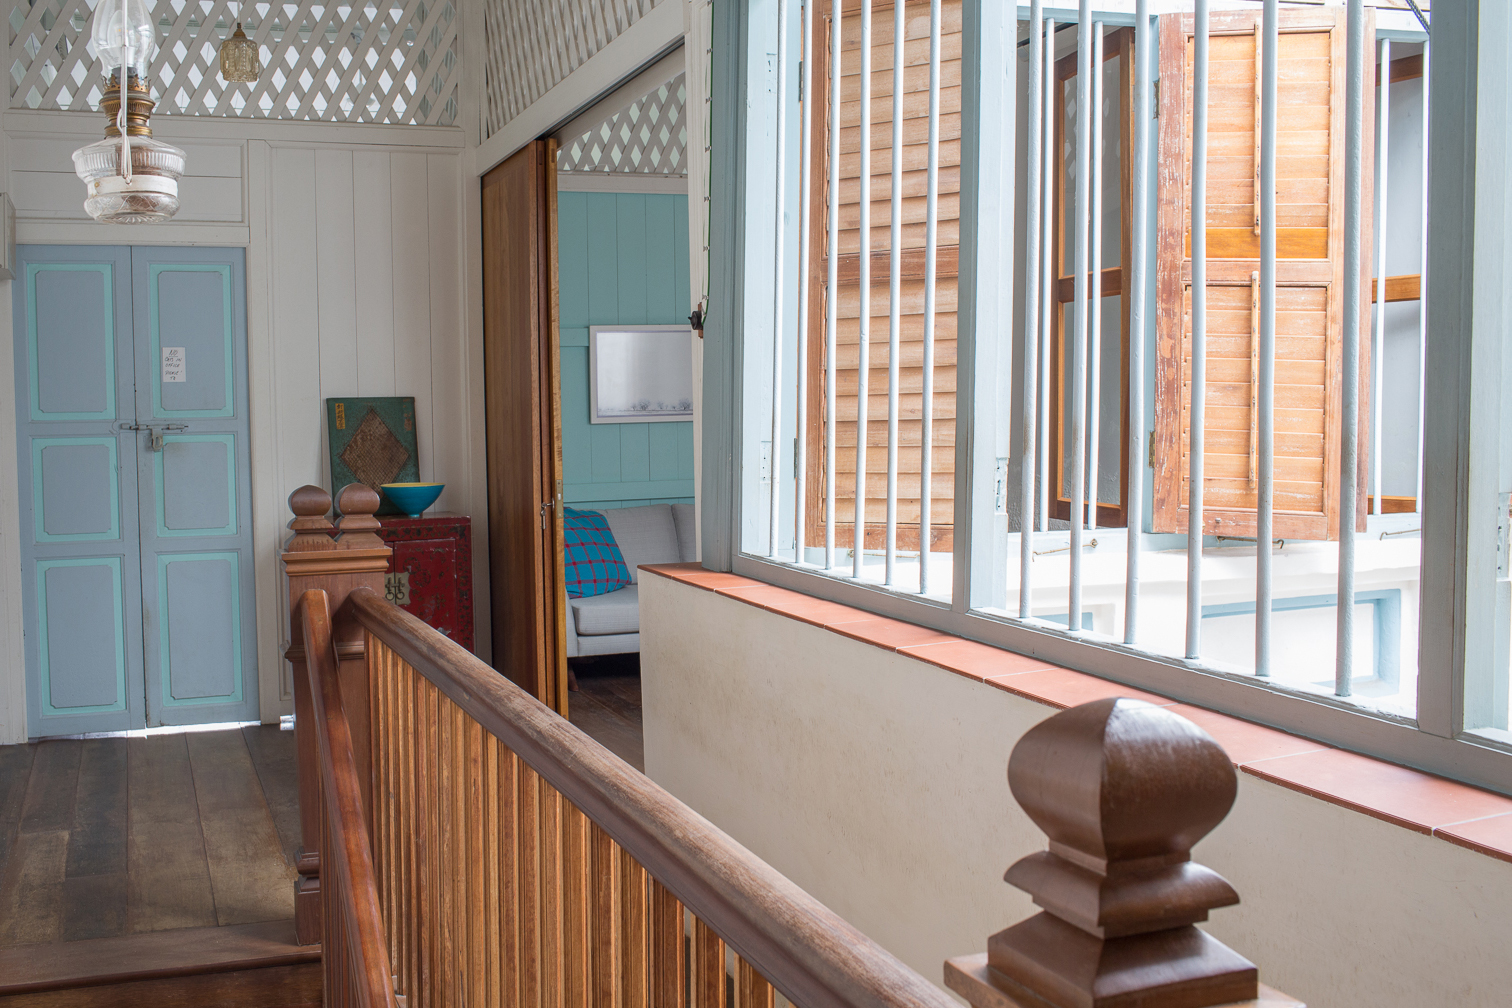 penang-heritage-house-for-sale-upper-floor-2